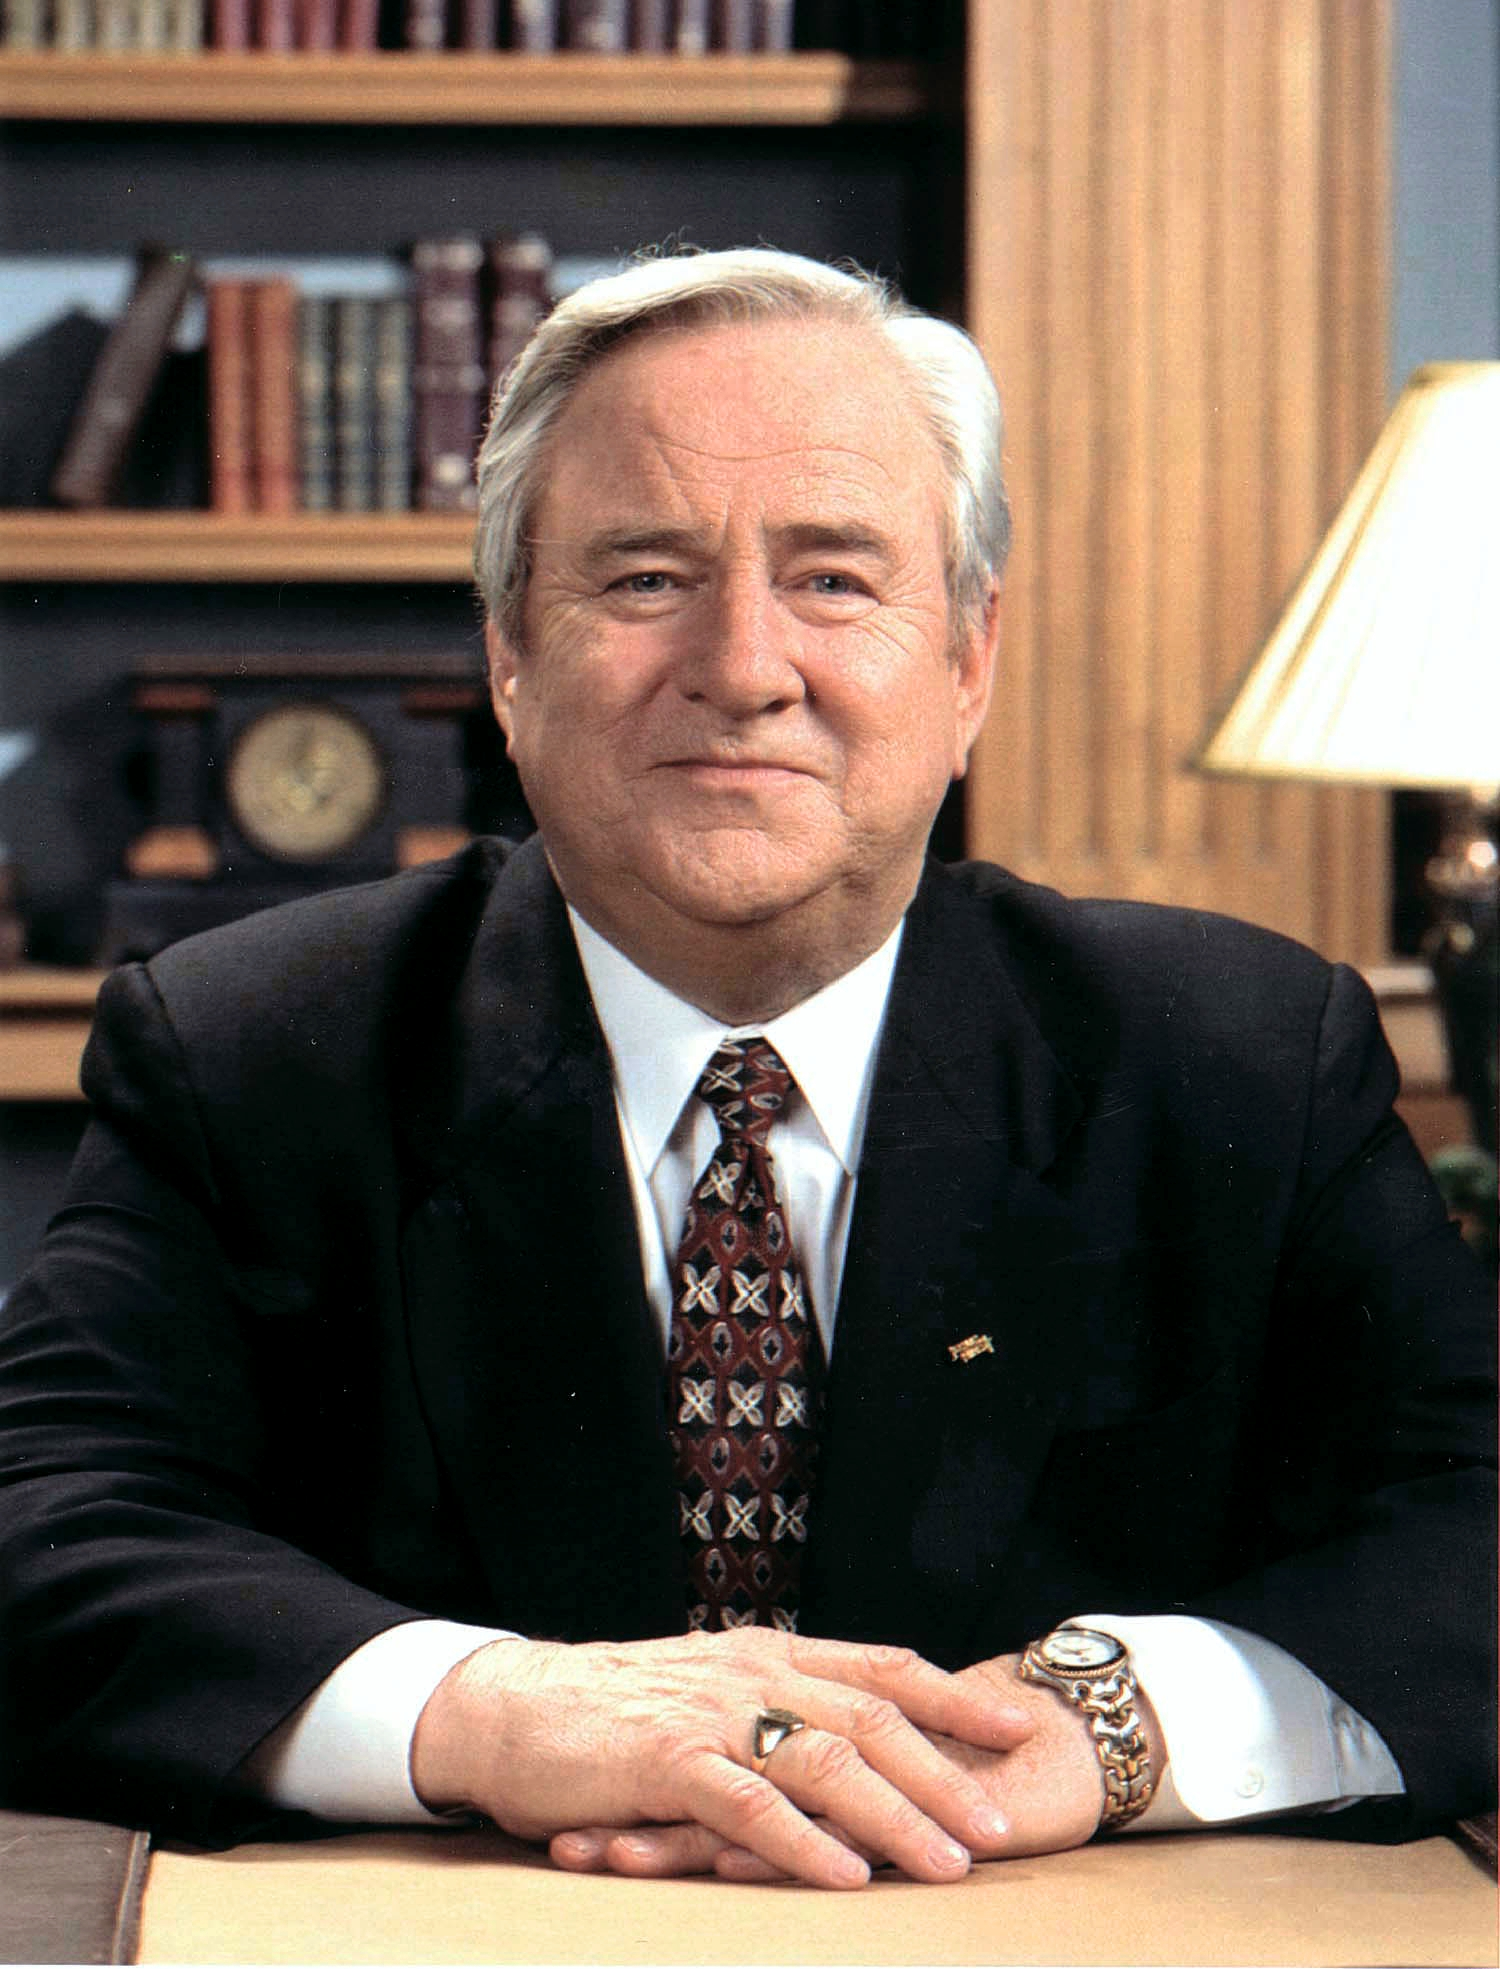 Jerry Falwell, whose founding of the Moral Majority was a key step in the formation of the New Christian Right